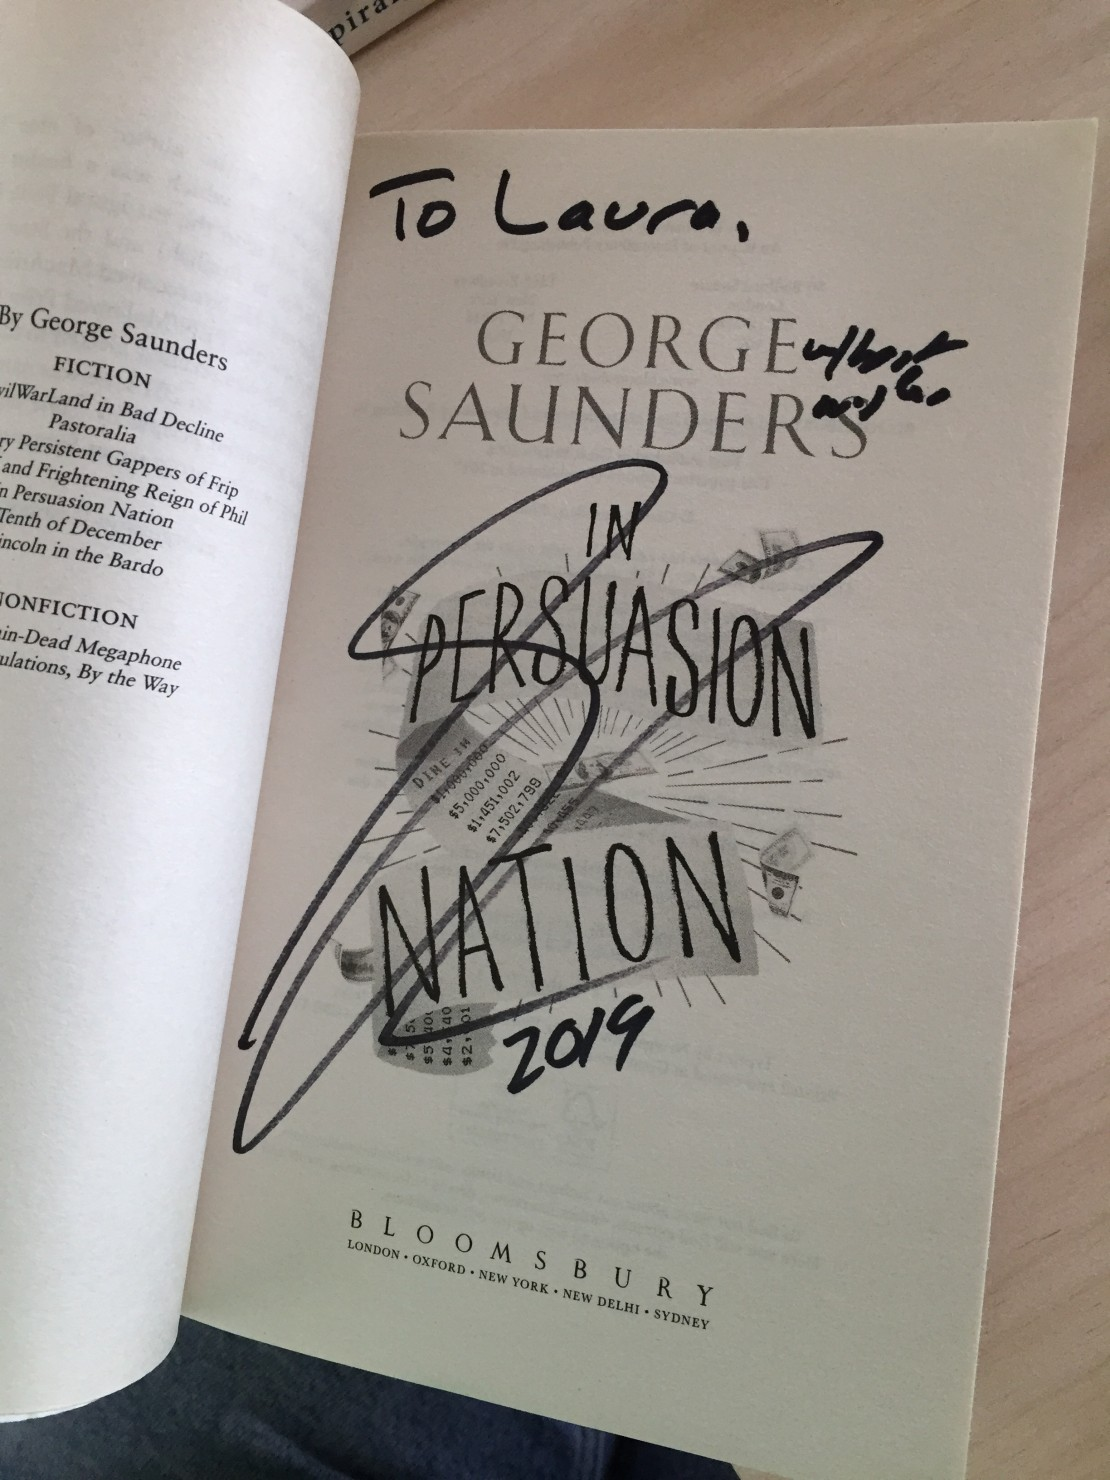 The title page of George Saunderss book In Persuasion Nation It is signed to Laura